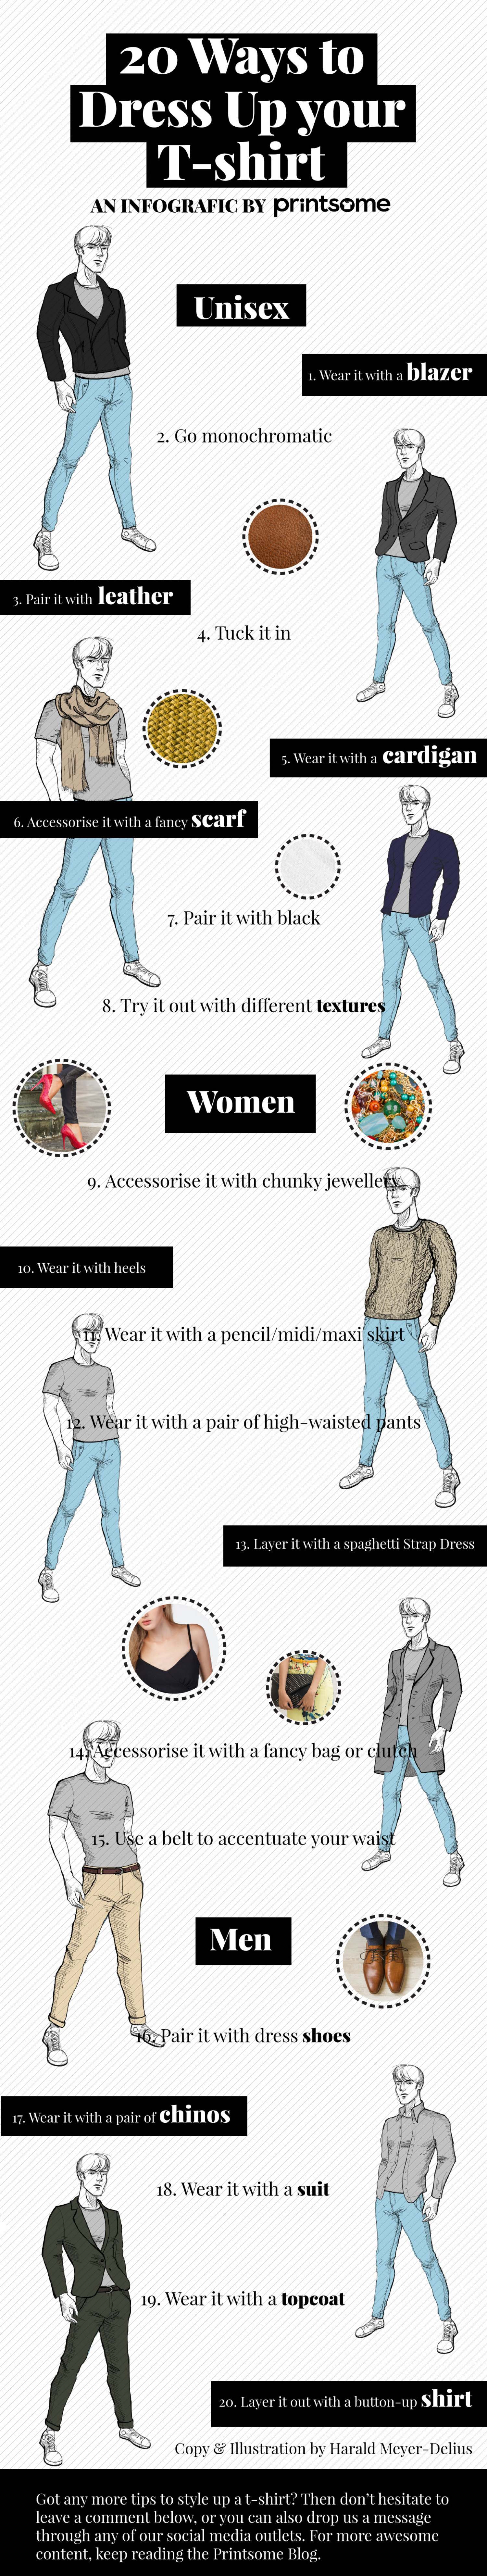 20 Simple Ways to Dress up Your T-shirt: The Infographic Infographic